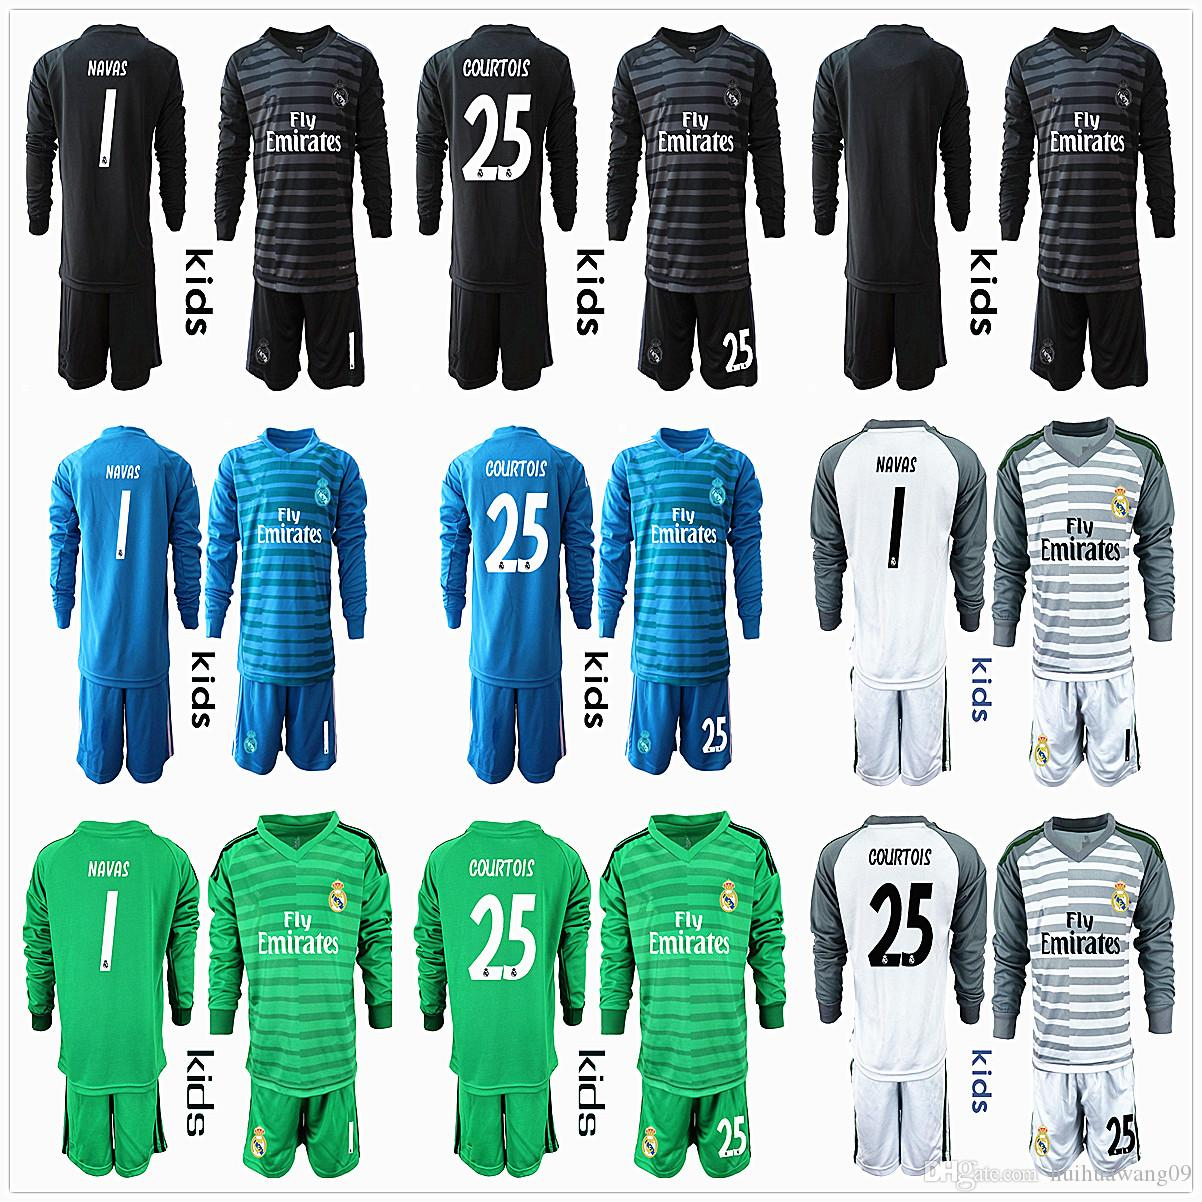 20c65cd5403 2019 2019 2018 Kids Youth Long 1 NAVAS 25 Courtois Real Madrid Jerseys  Goalkeeper Soccer Sets Kits Boy Benzema Bale Children Football Uniform From  ...